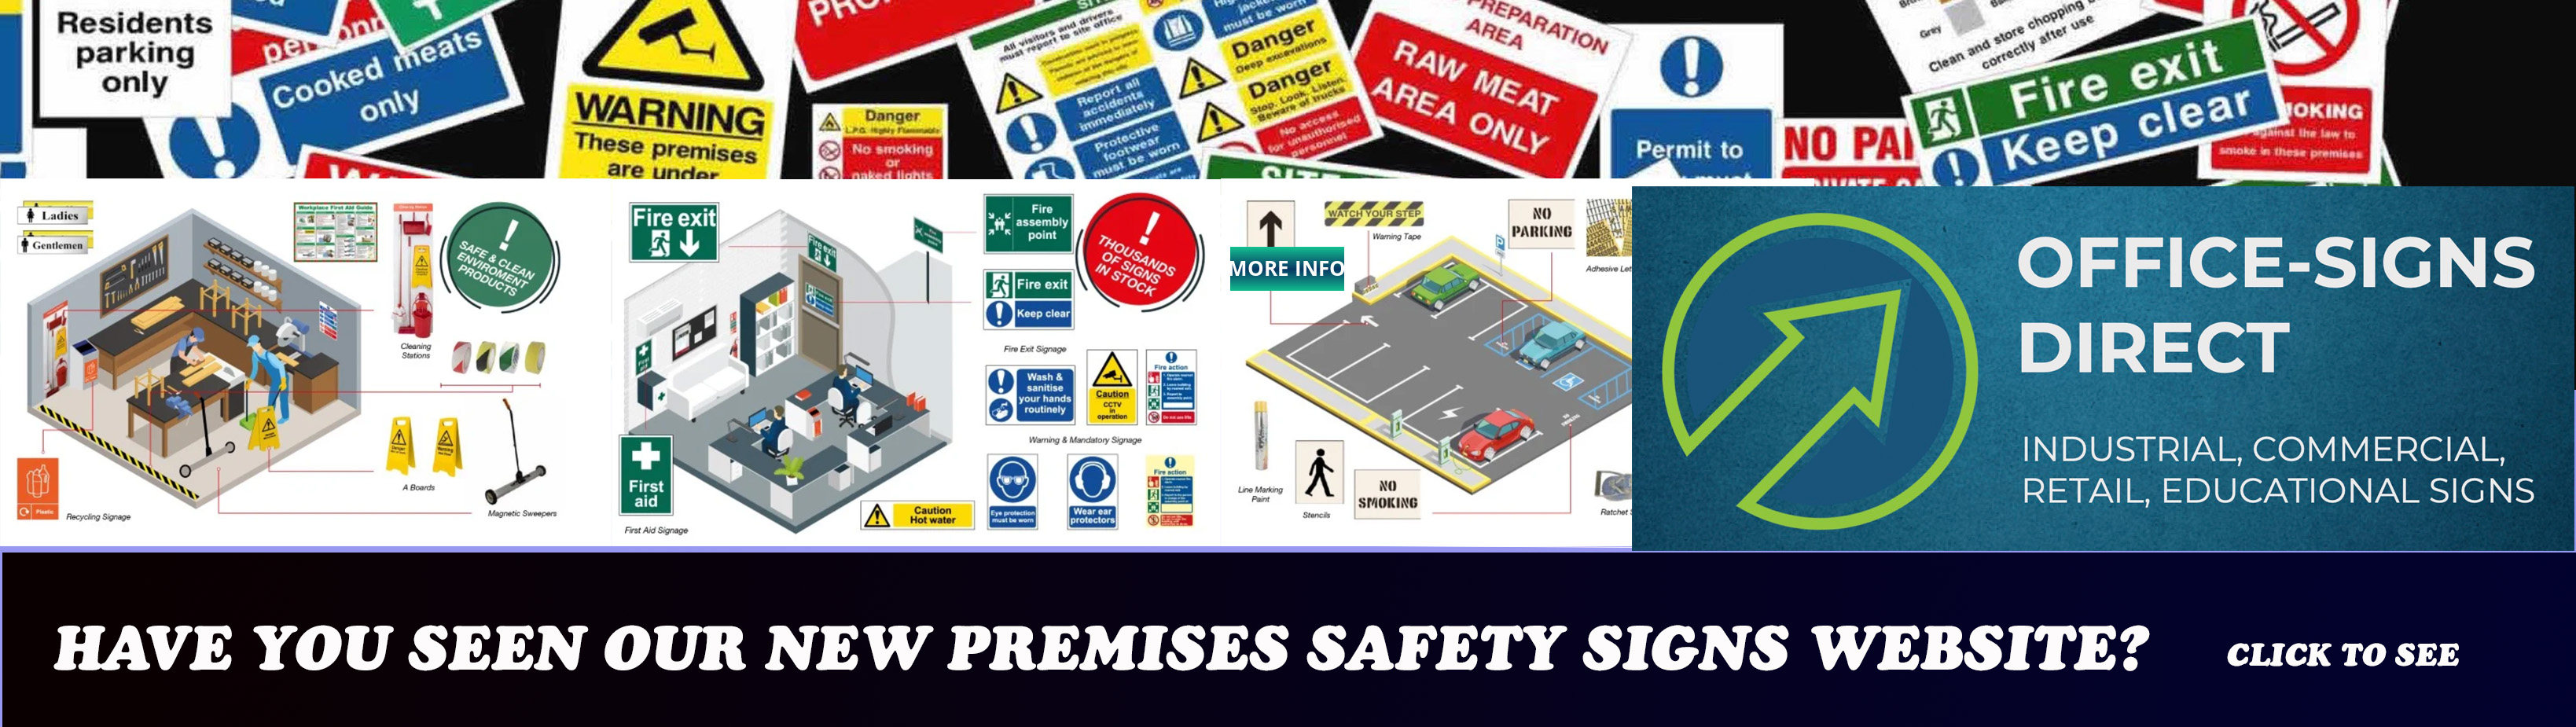 Safety Premises Signs Banner Image